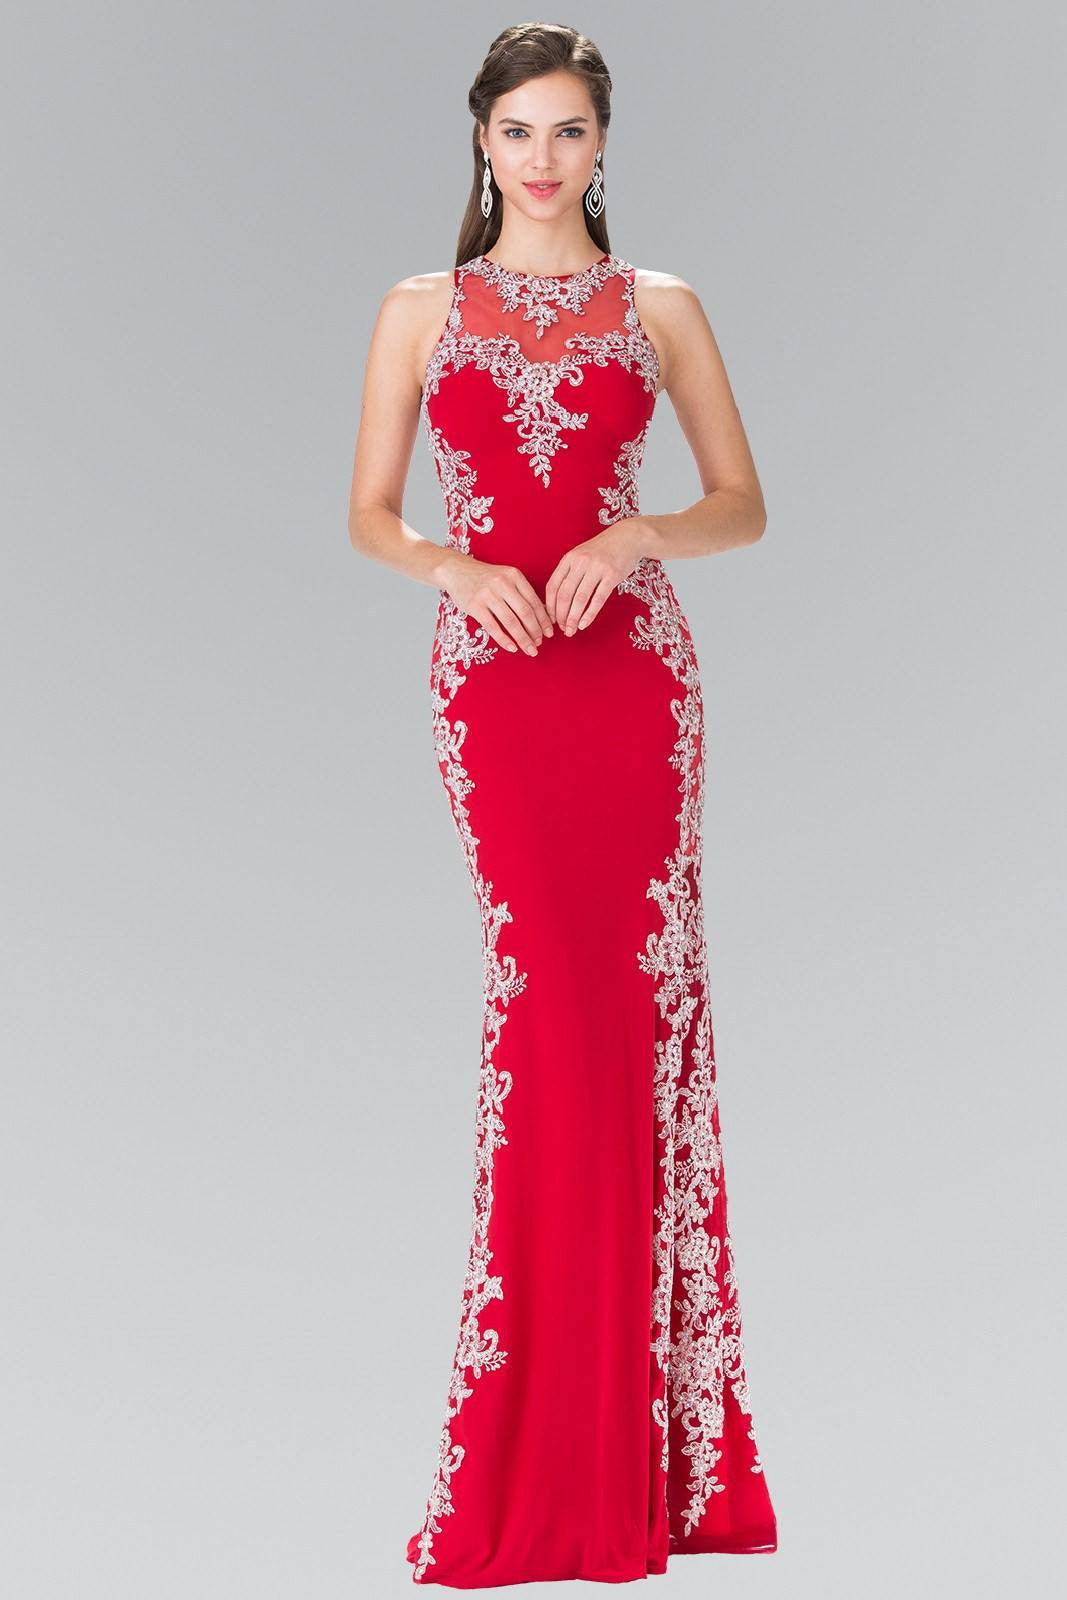 Trendy fashion prom dresses